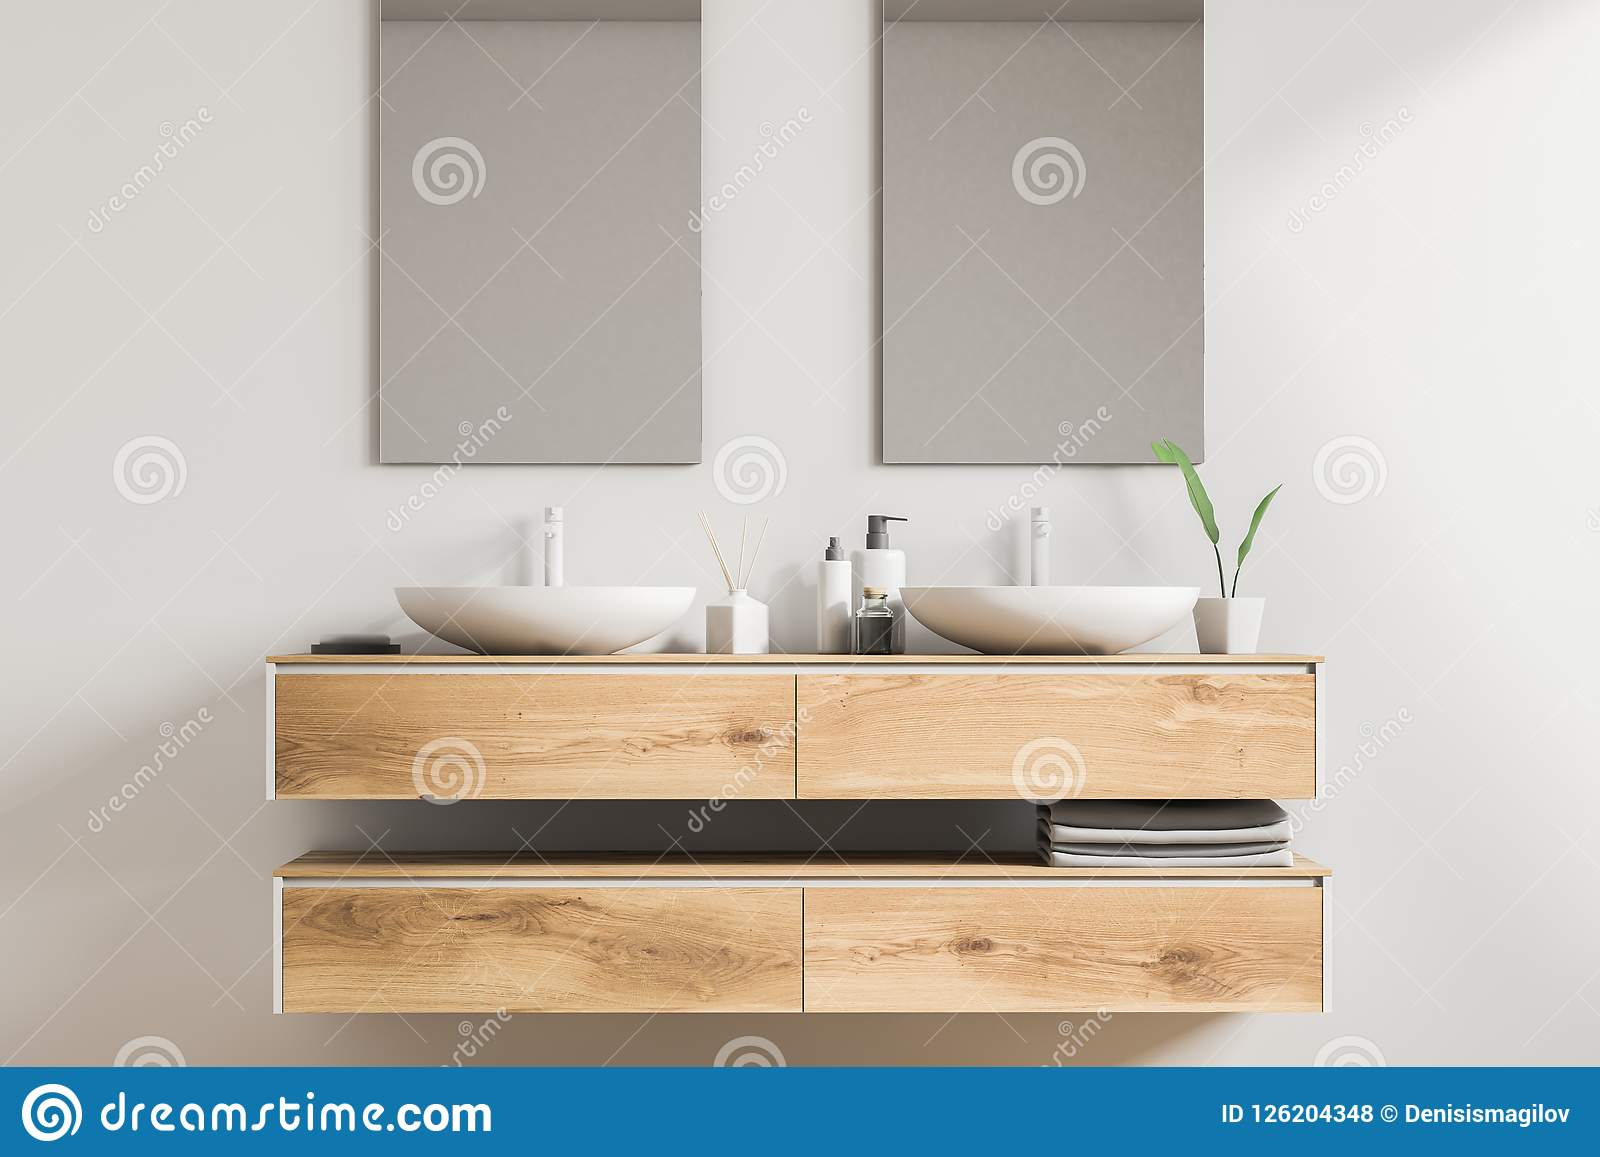 Double Sink Wooden Vanity Unit Vertical Mirrors Stock Illustration Illustration Of House Faience 126204348